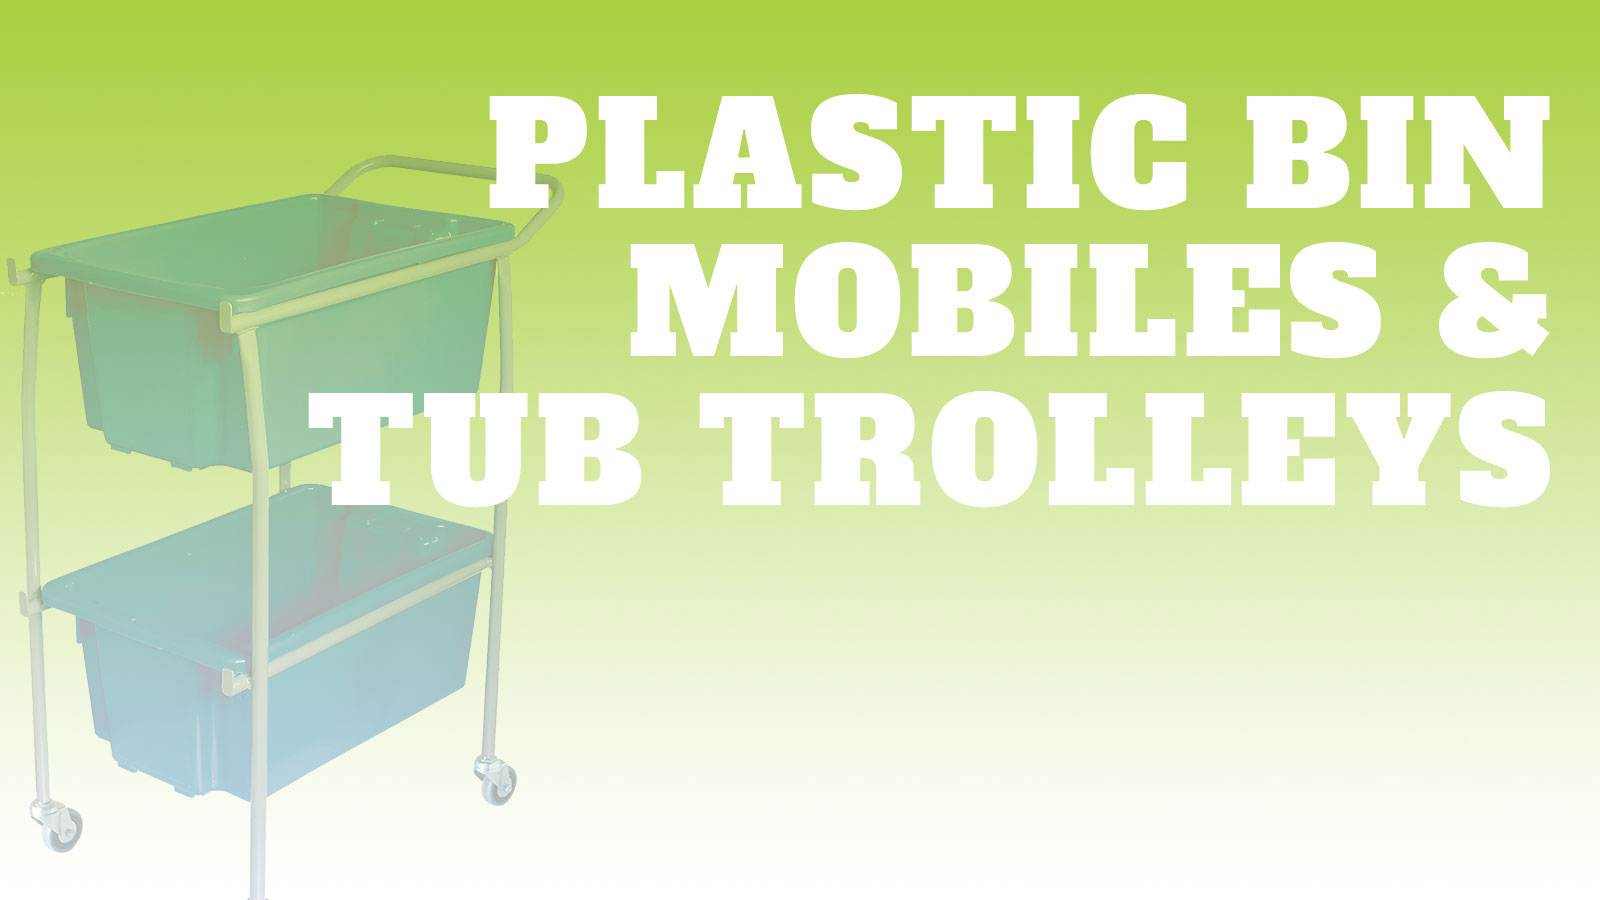 Warehouse-Plastic-Bin-Mobiles-&-Tub